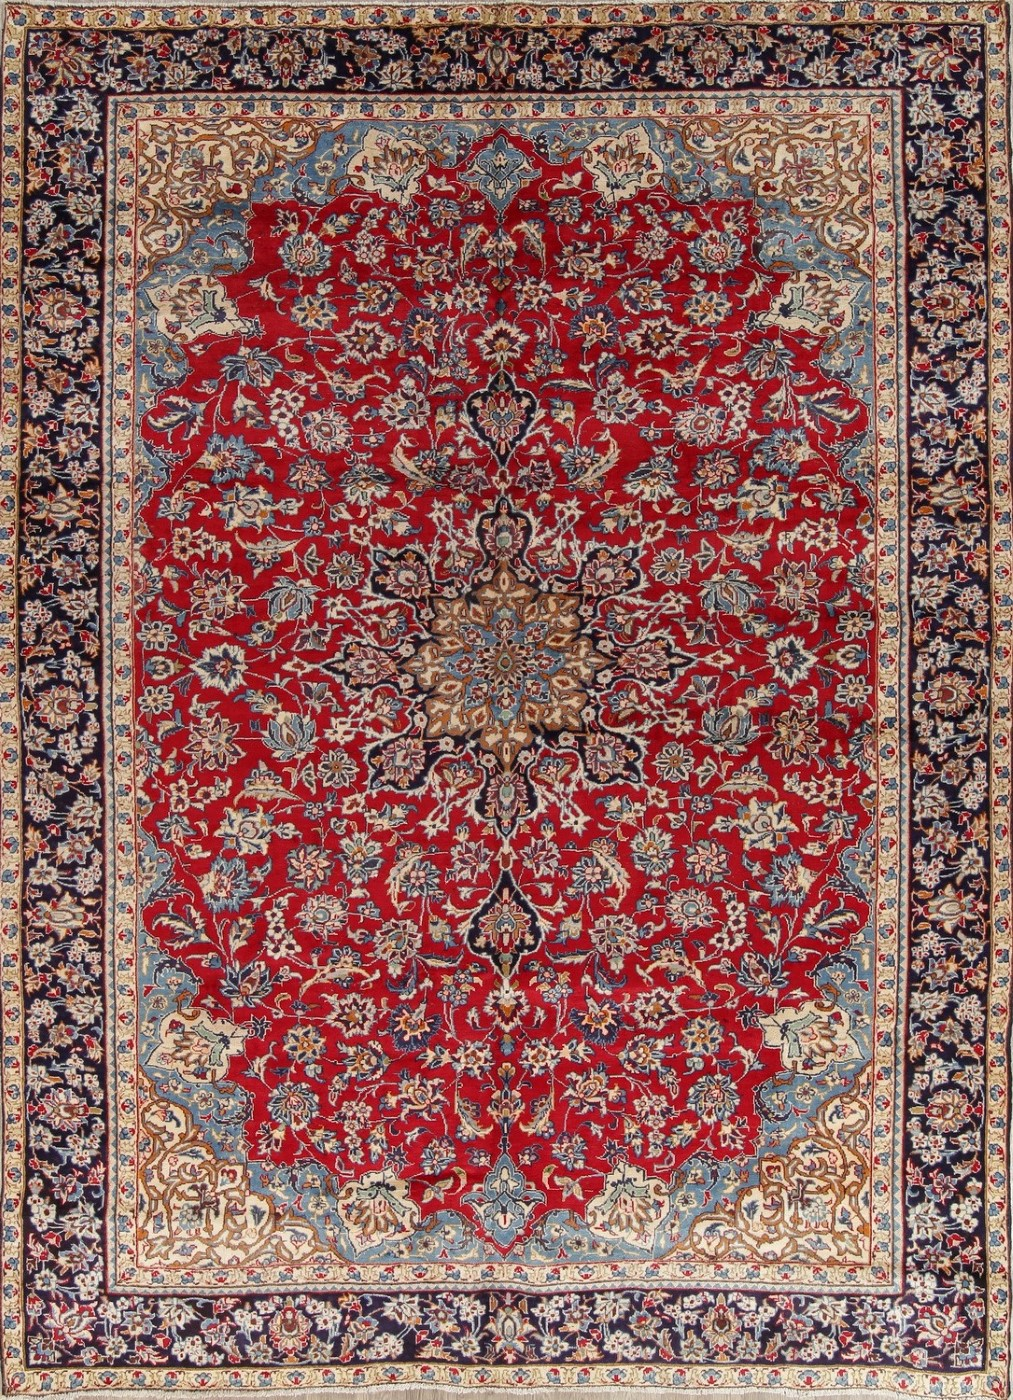 Vintage Traditional Floral Red 10x13 Najafabad Persian Oriental Area Rug Rugs & Carpets